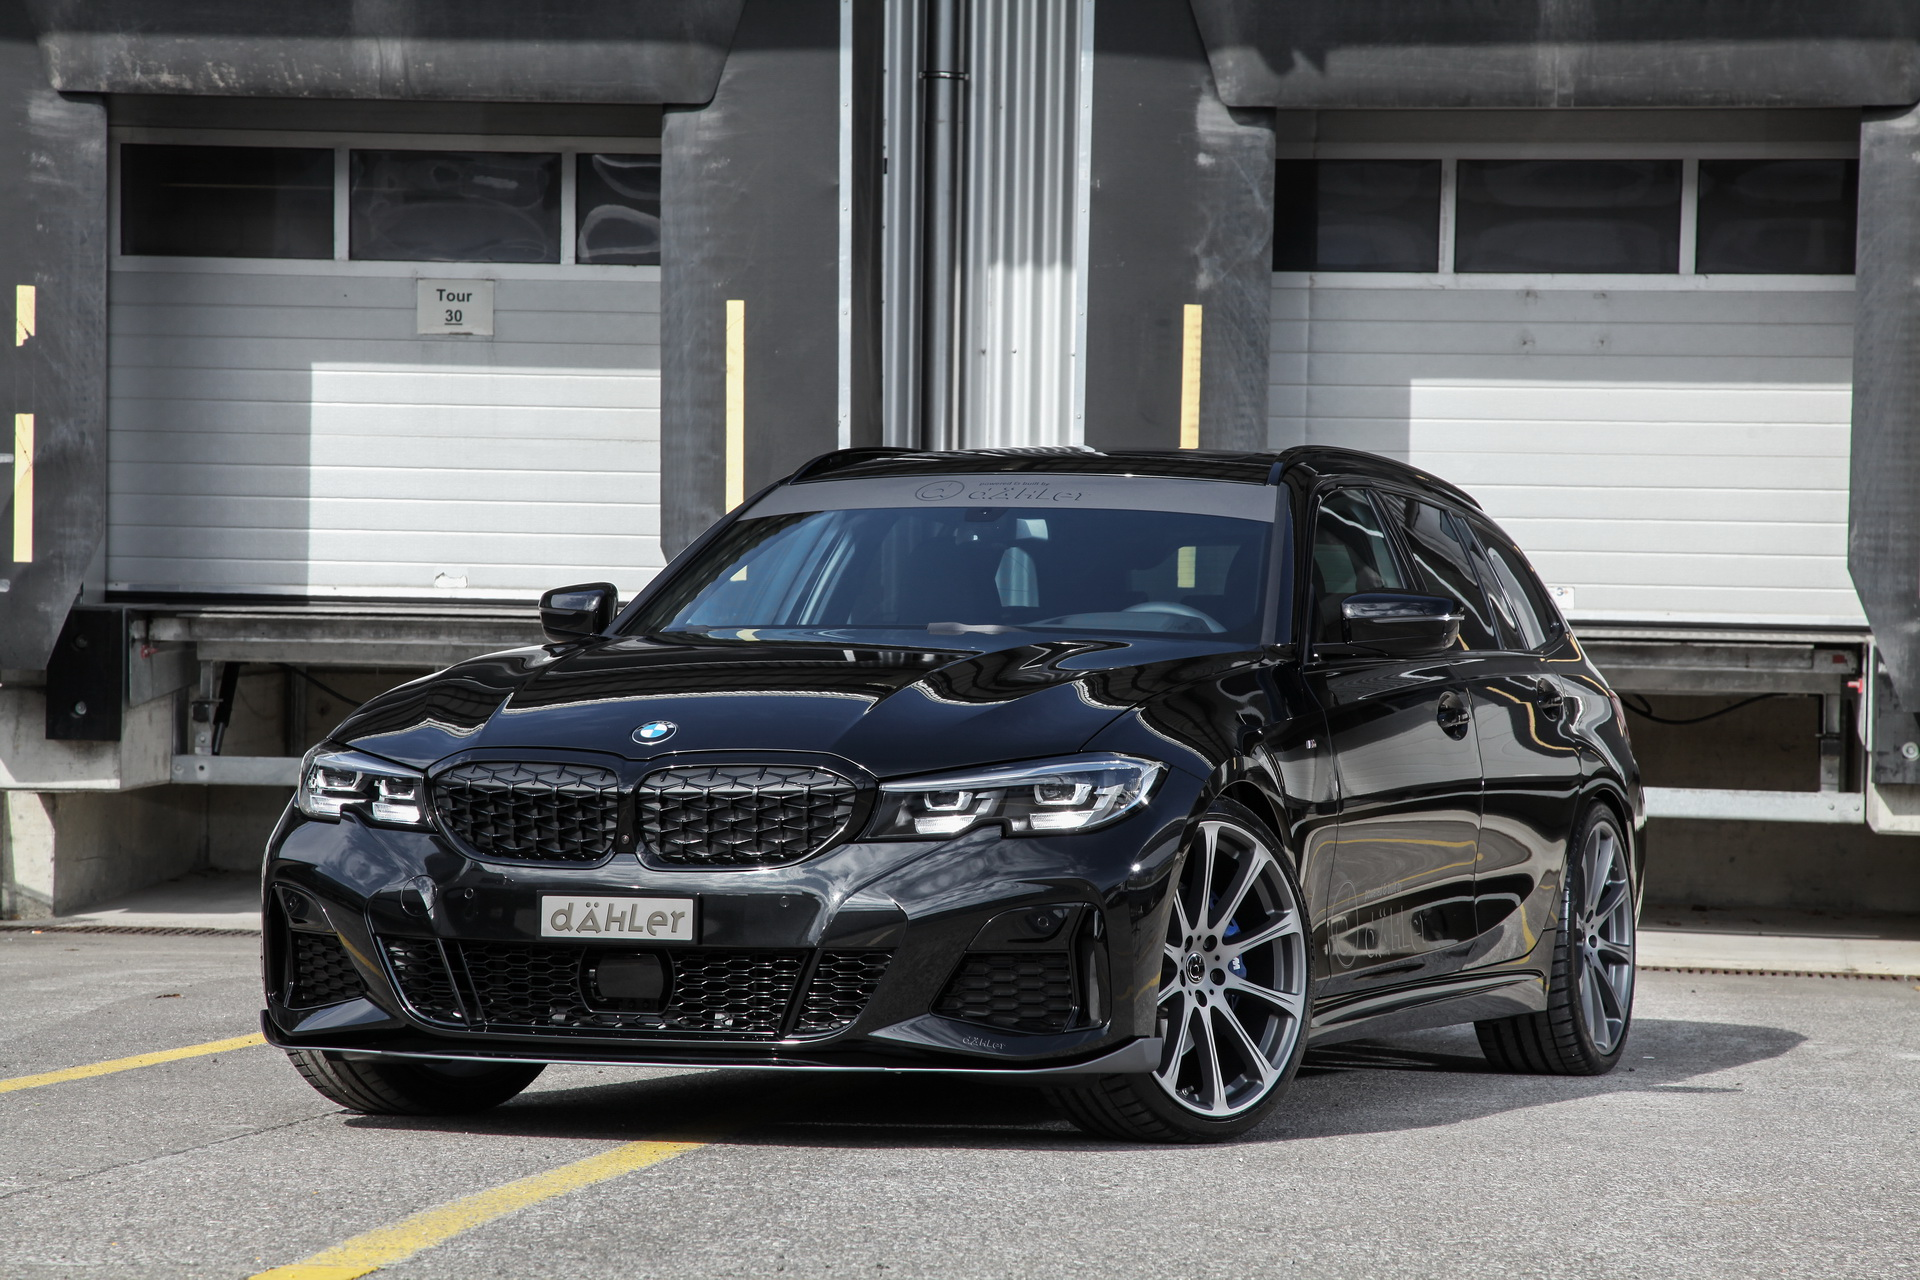 Dahler Unveils Tuning Kit For Bmw M340i With M3 Rivaling Numbers Pistonleaks